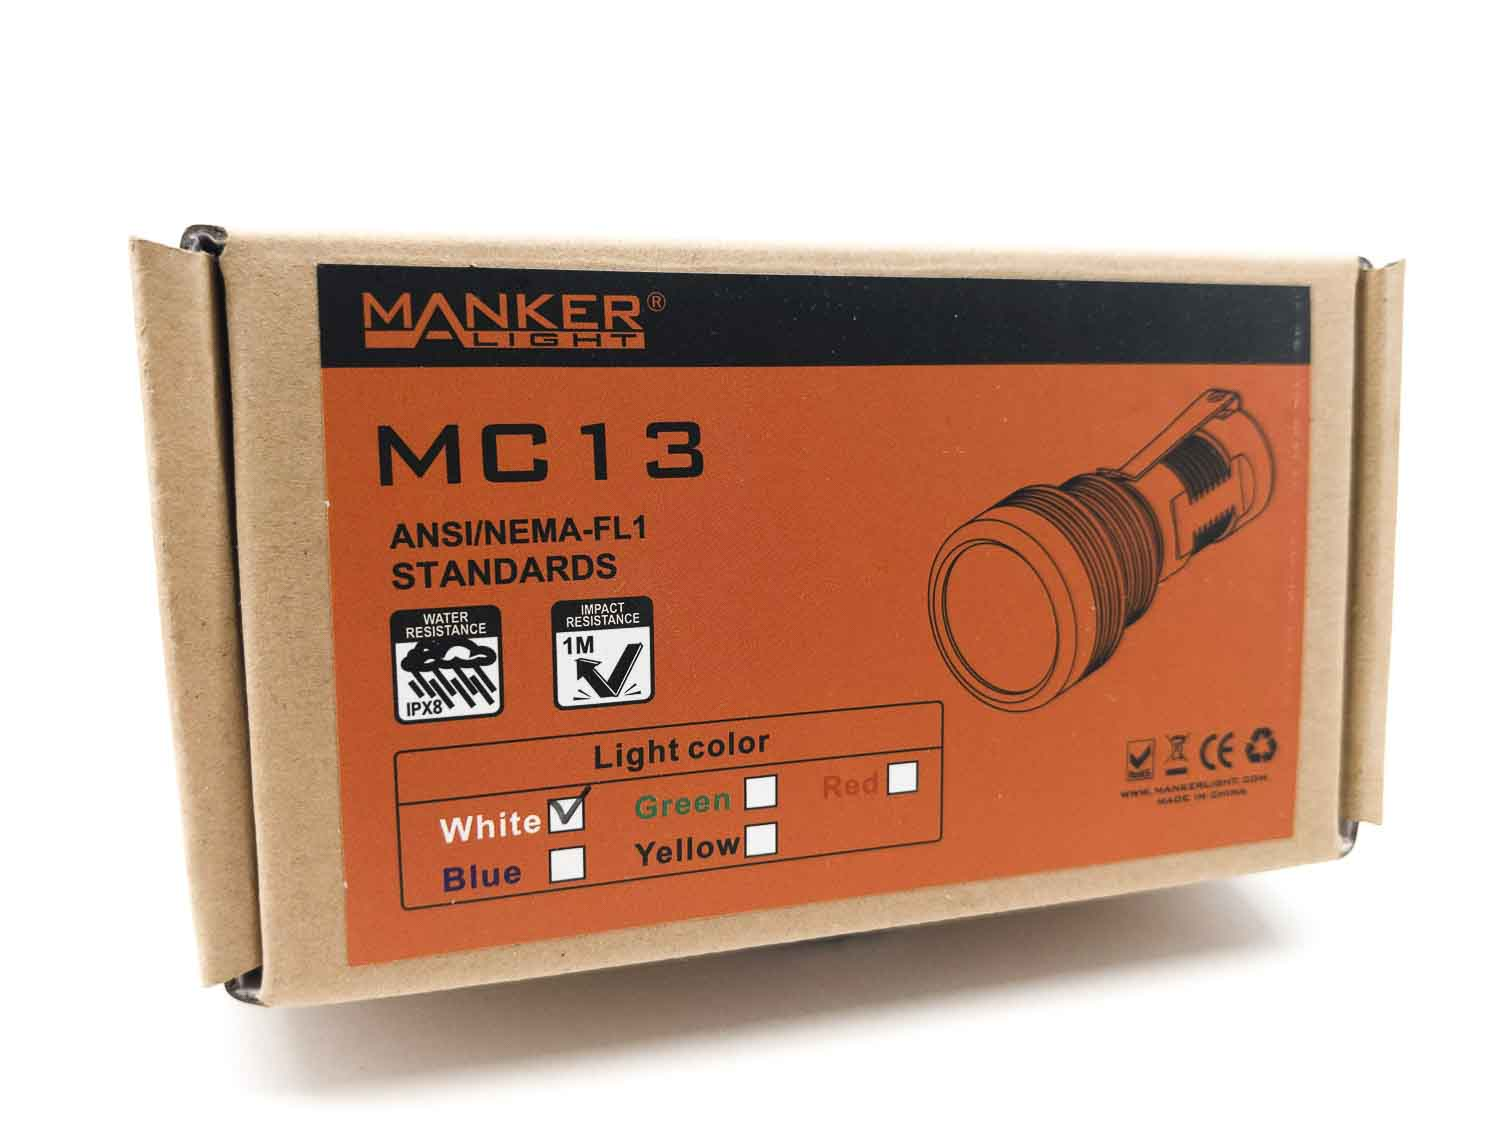 Manker flashlight package